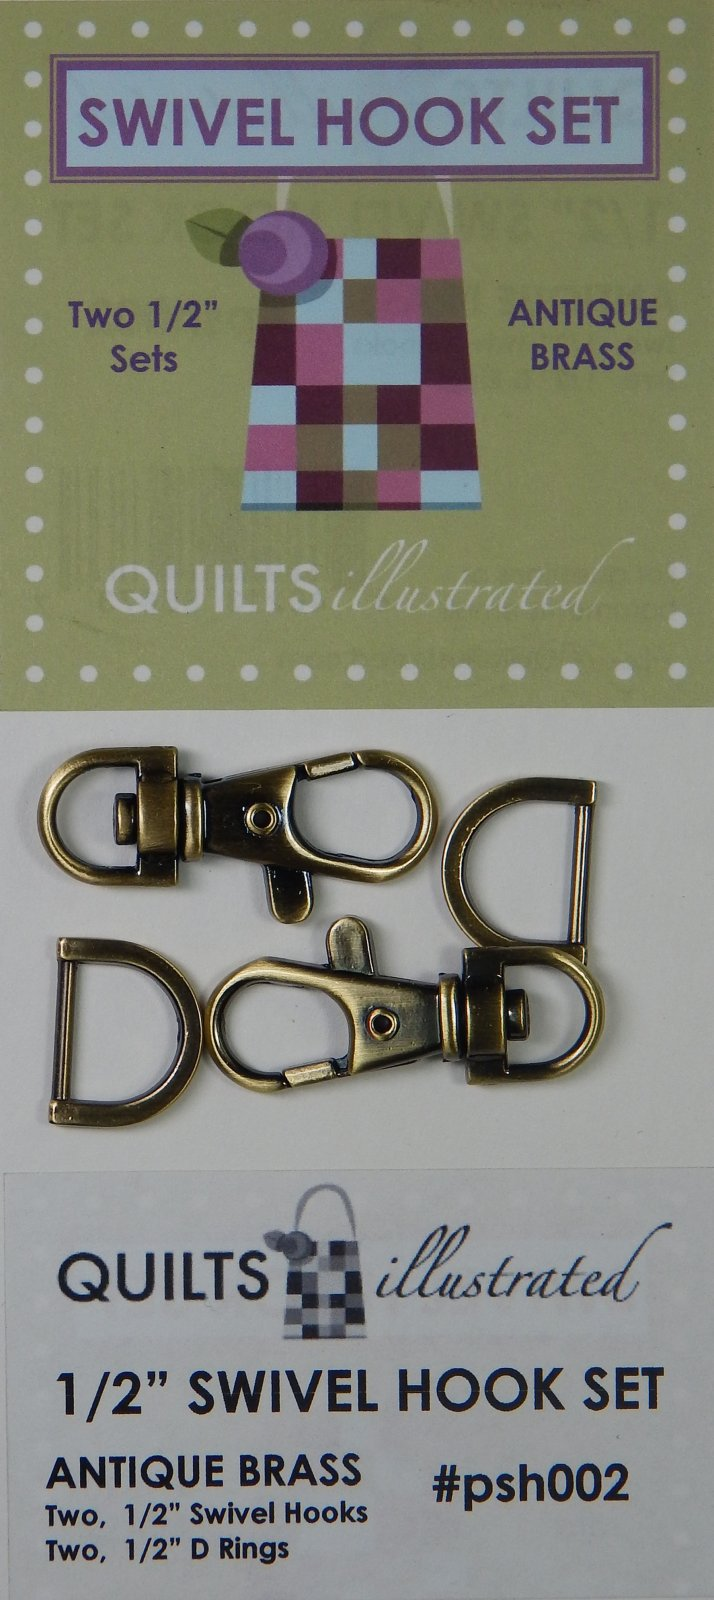 1/2 Swivel Hook Set - Antique Brass - psh002